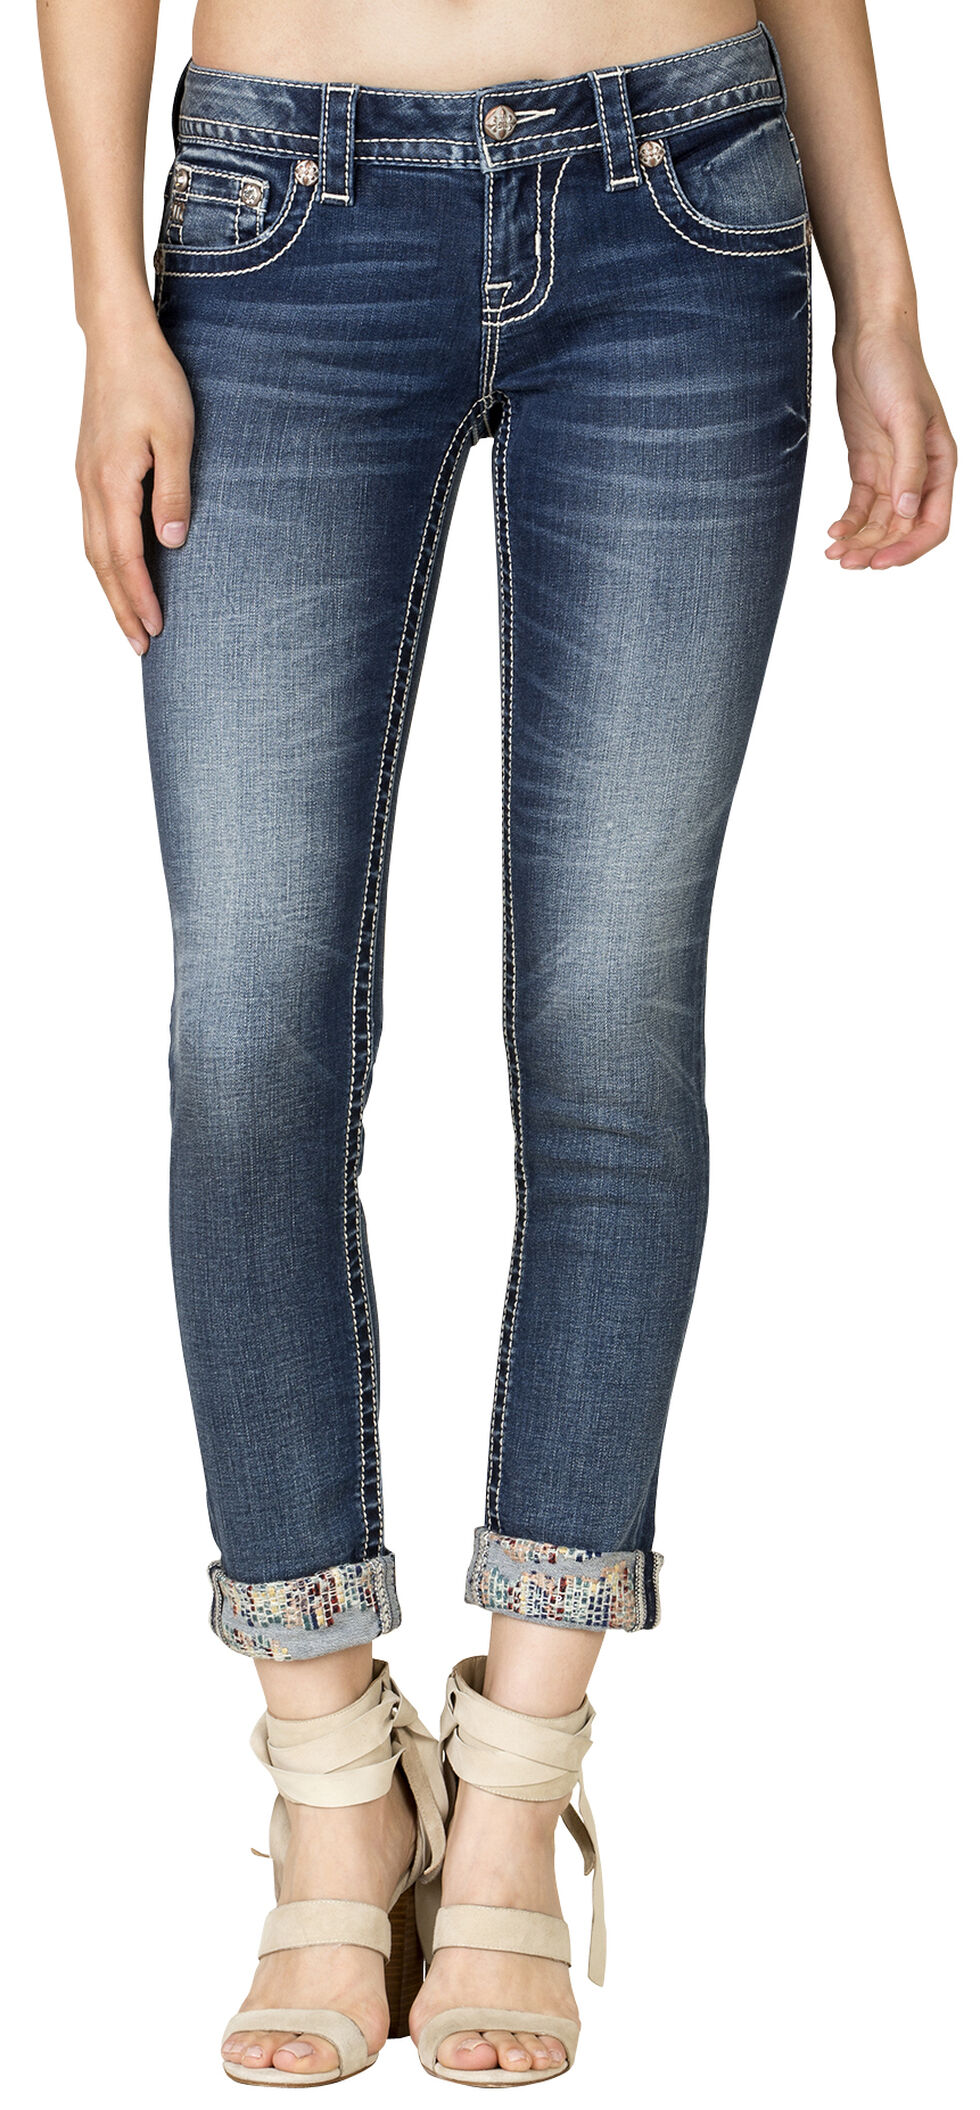 Miss Me Women's Silent Detail Cuffed Skinny Jeans, Blue, hi-res